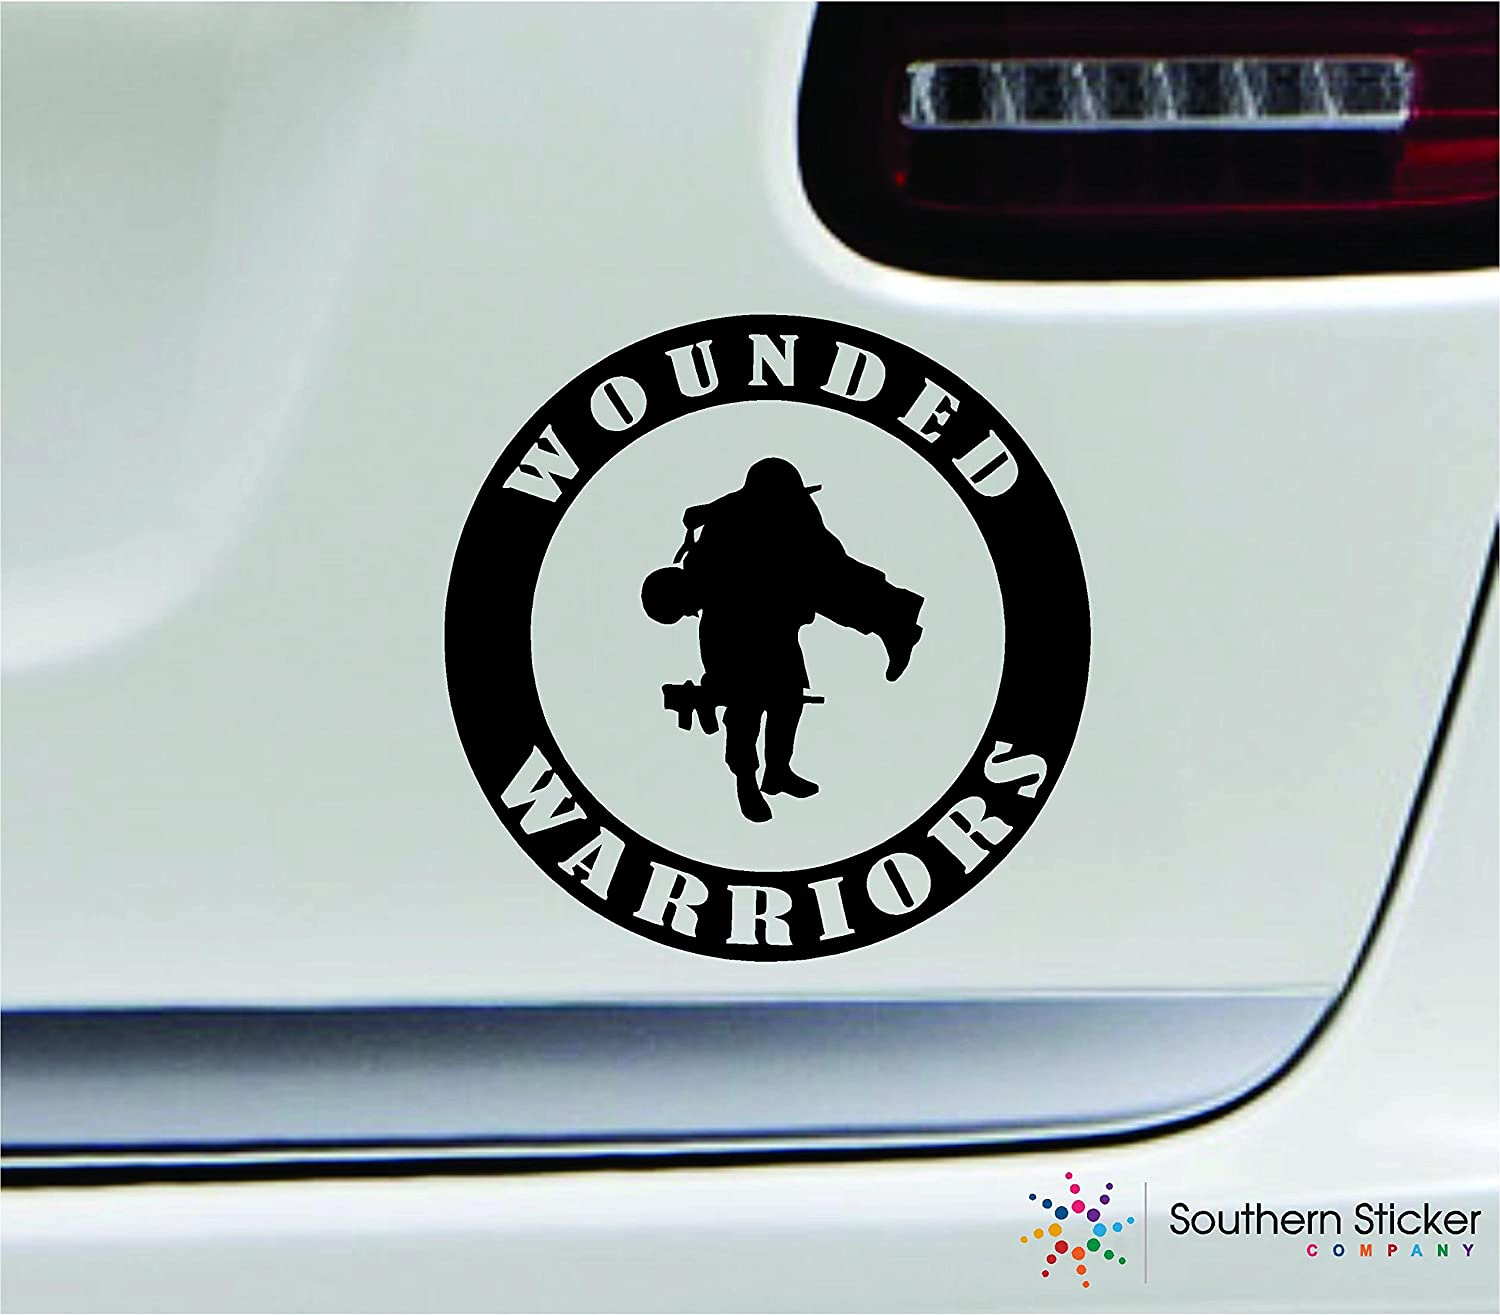 Wounded warriors symbol 5.4x5.4 black marine navy army military soldier veteran united states america color sticker state decal vinyl Made and Shipped in USA